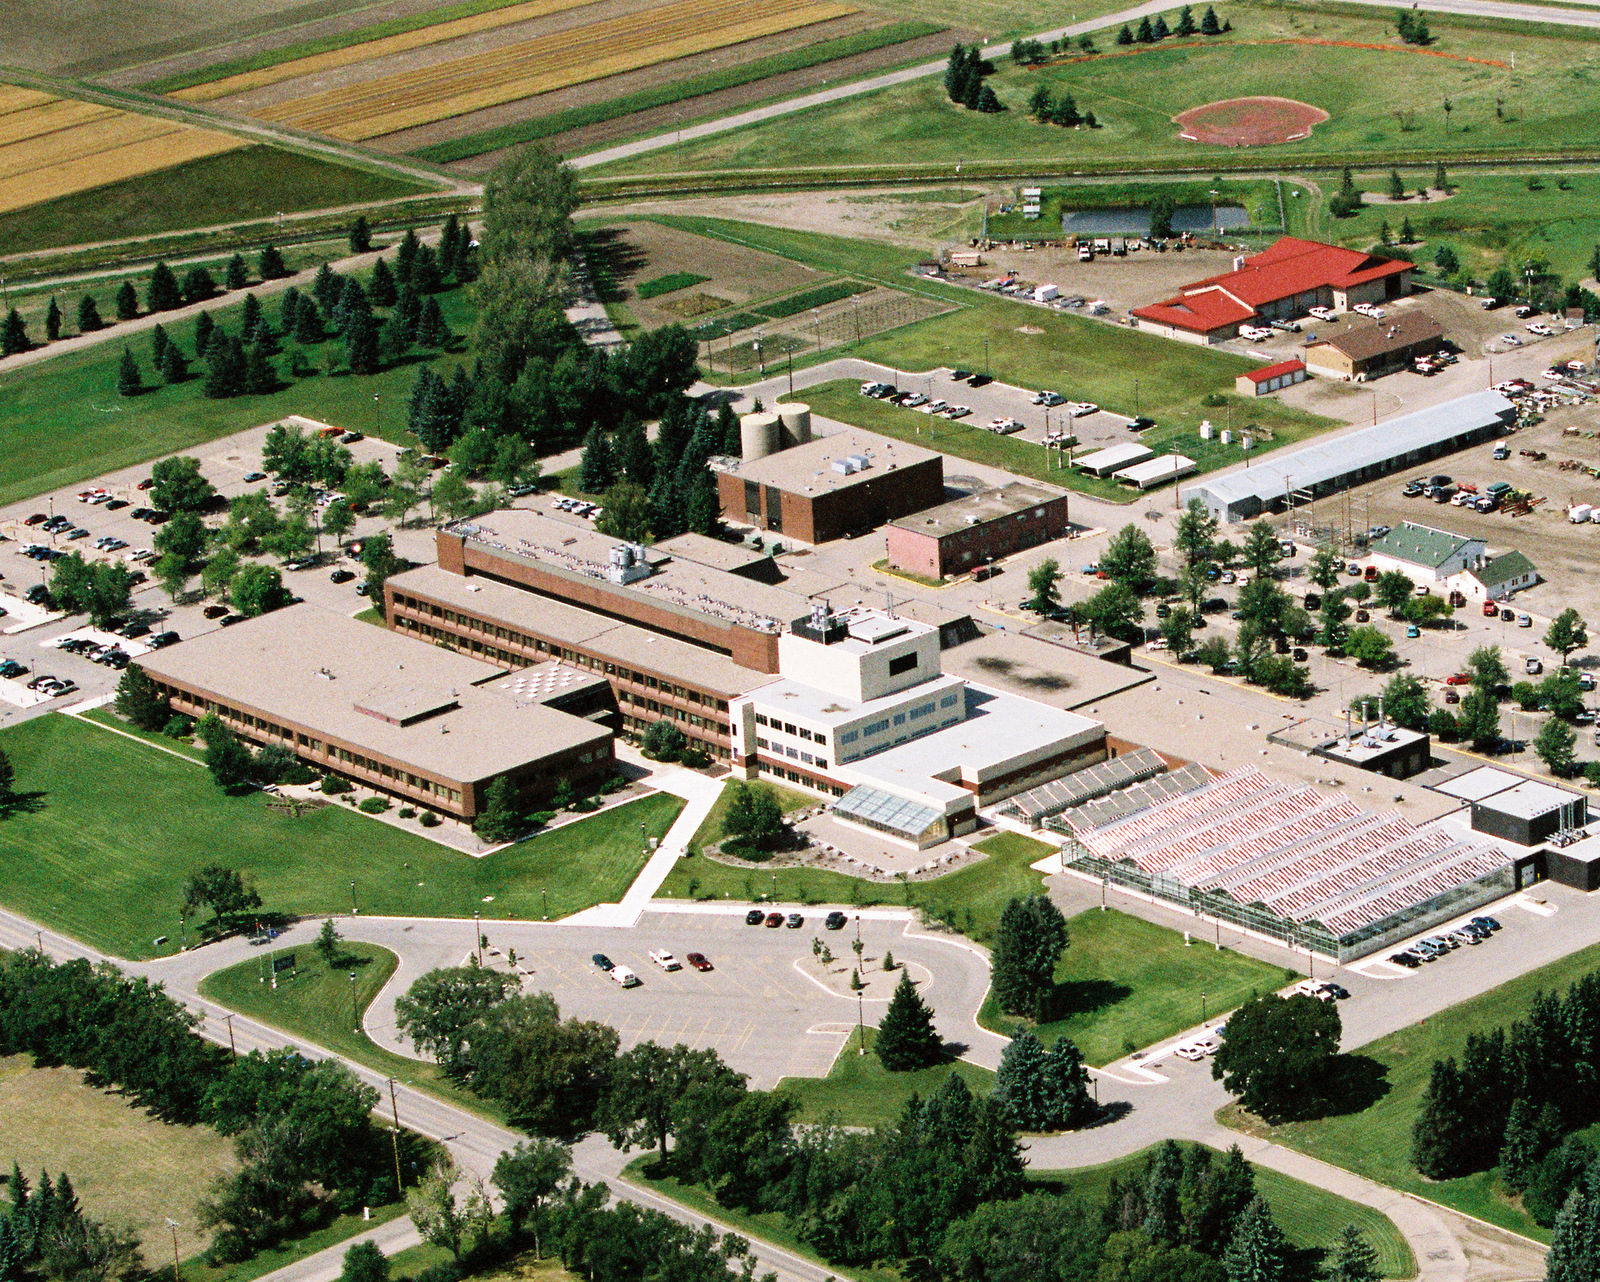 Lethbridge Research and Development Centre